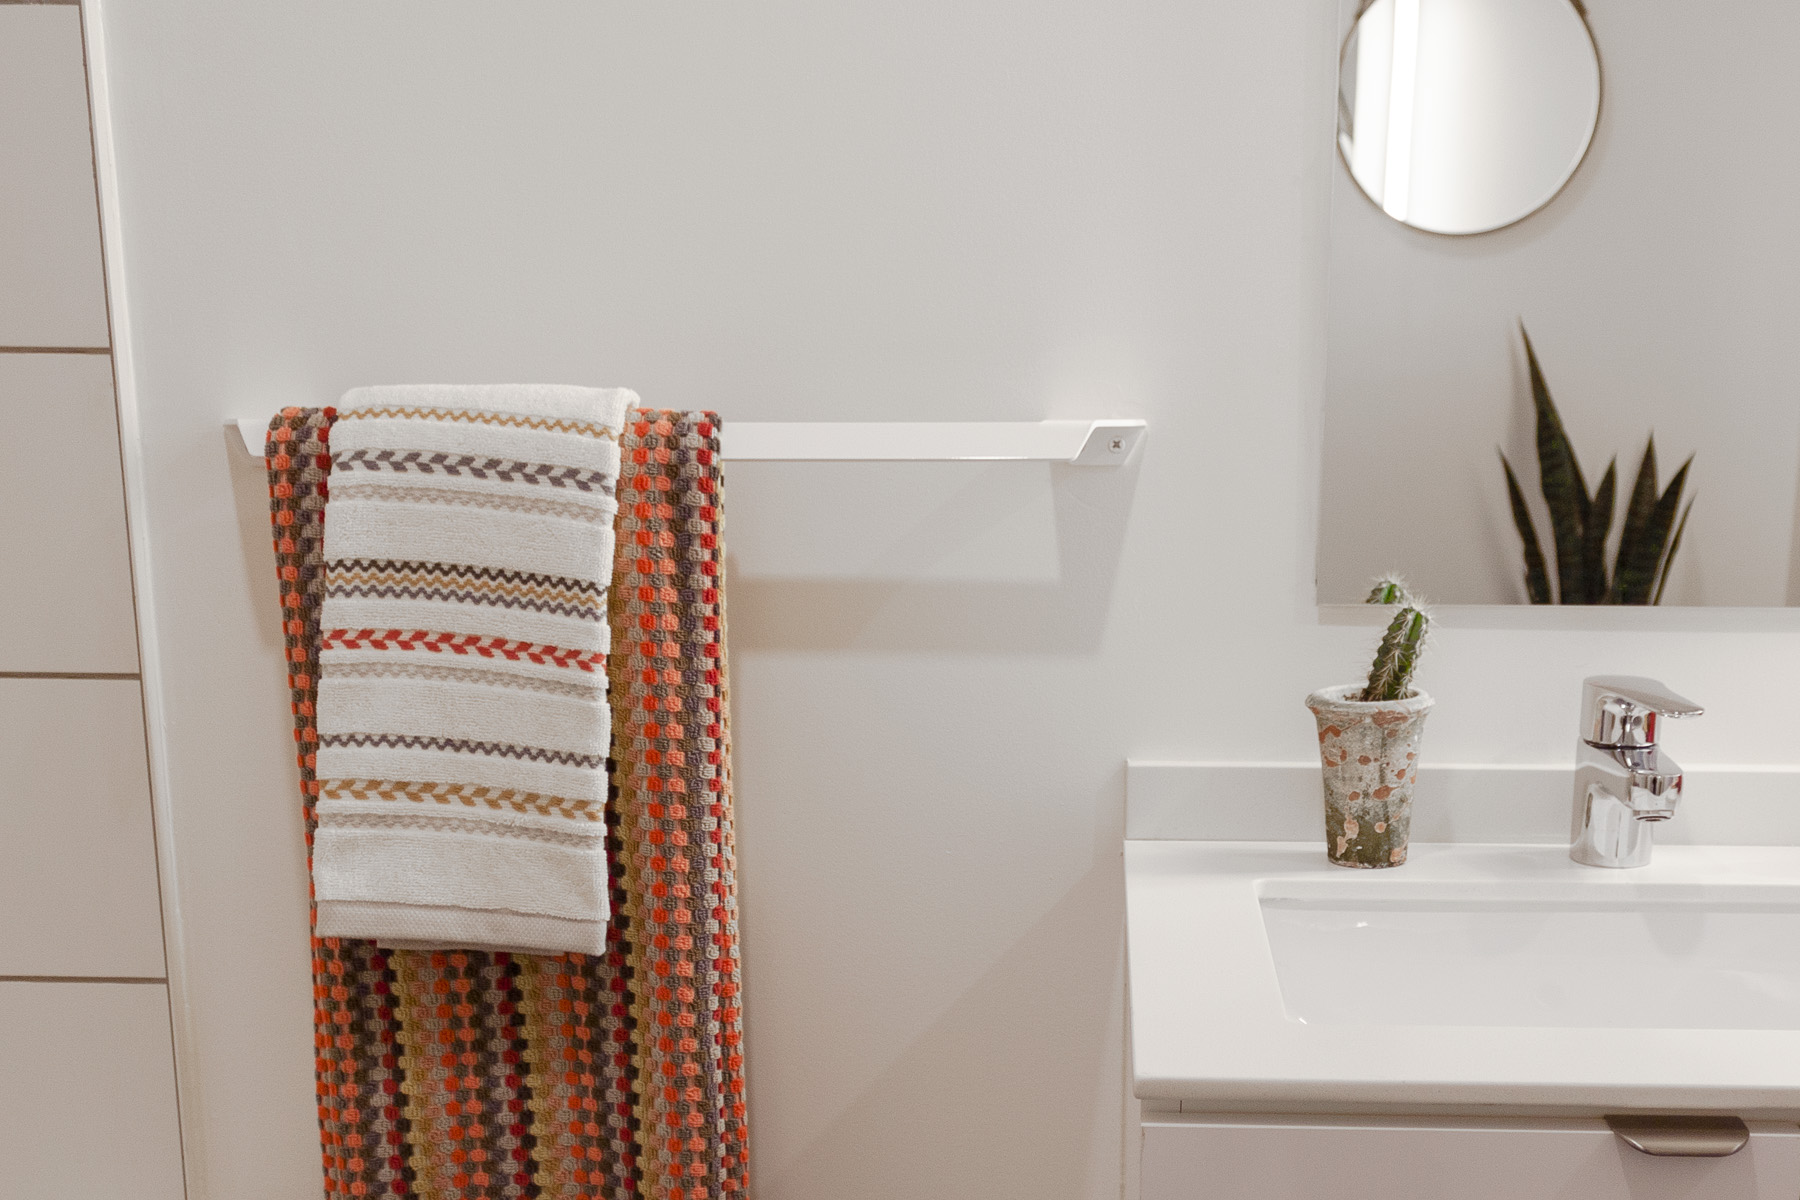 towel bar 2.jpg